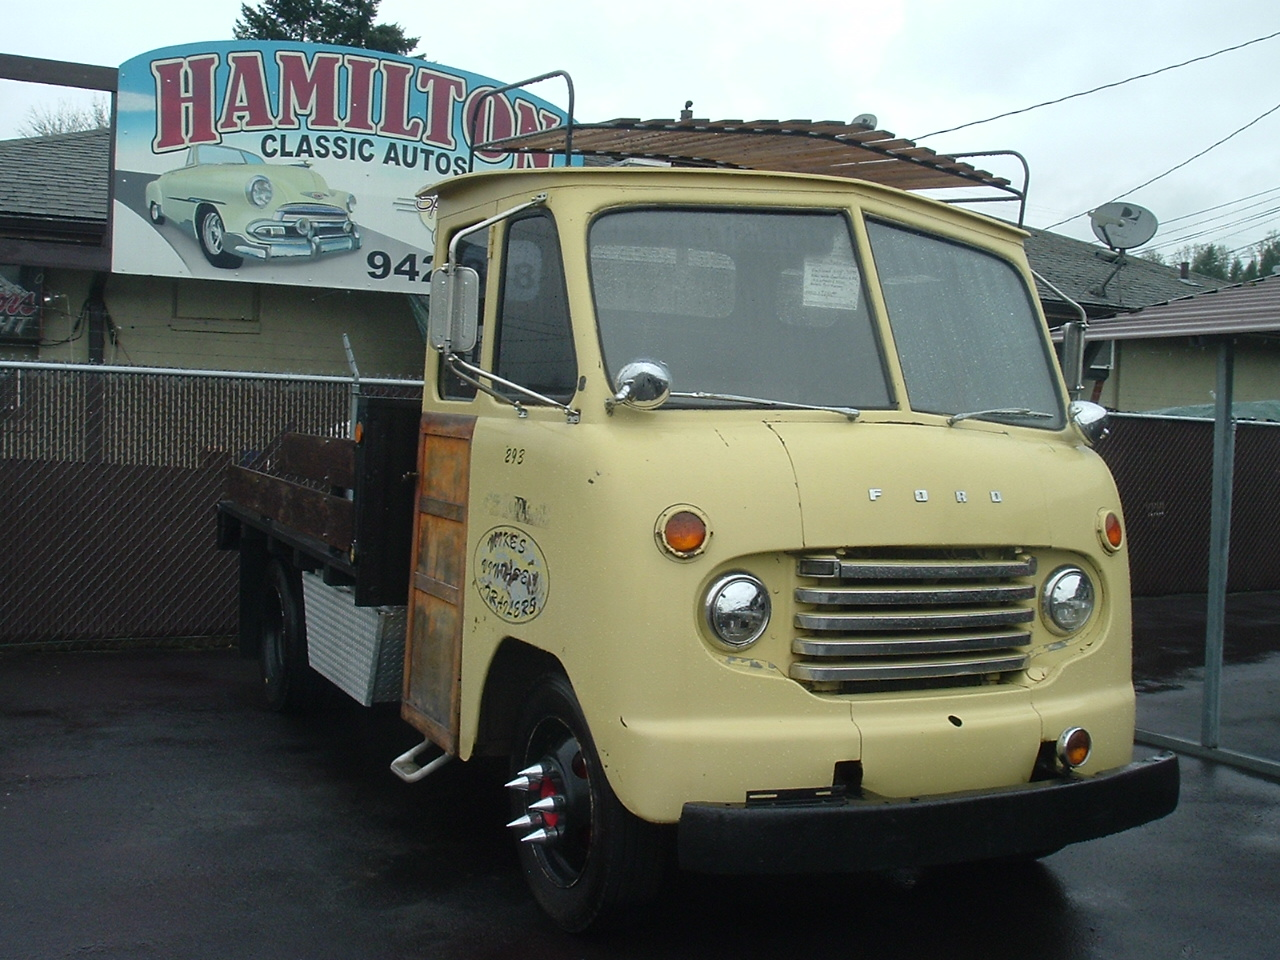 Hamilton Auto Sales 1951 1952 Ford Hot Rod Truck Pics 1950 F 5 Parcel Delivery Converted To Flatbed Flat Head 6cyl 226 Ci 3 Spd Transmission Rear End Ratio Is 583 And Will Travel At Freeway Speeds